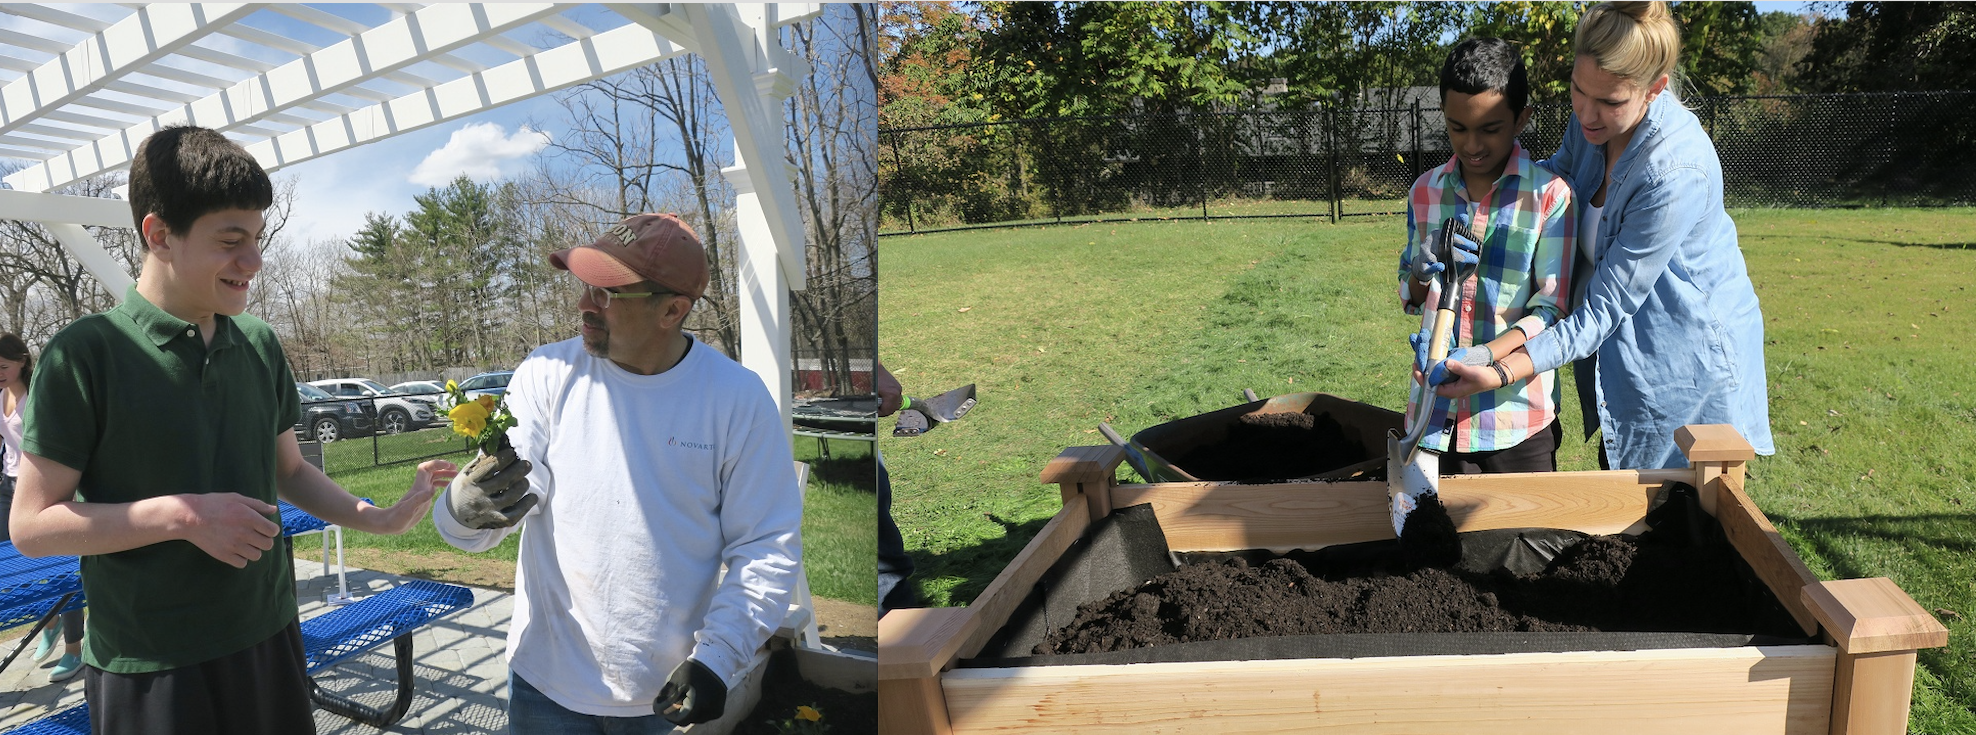 New Jersey's Garden Academy Enhances School Curriculum With Environmental Stewardship